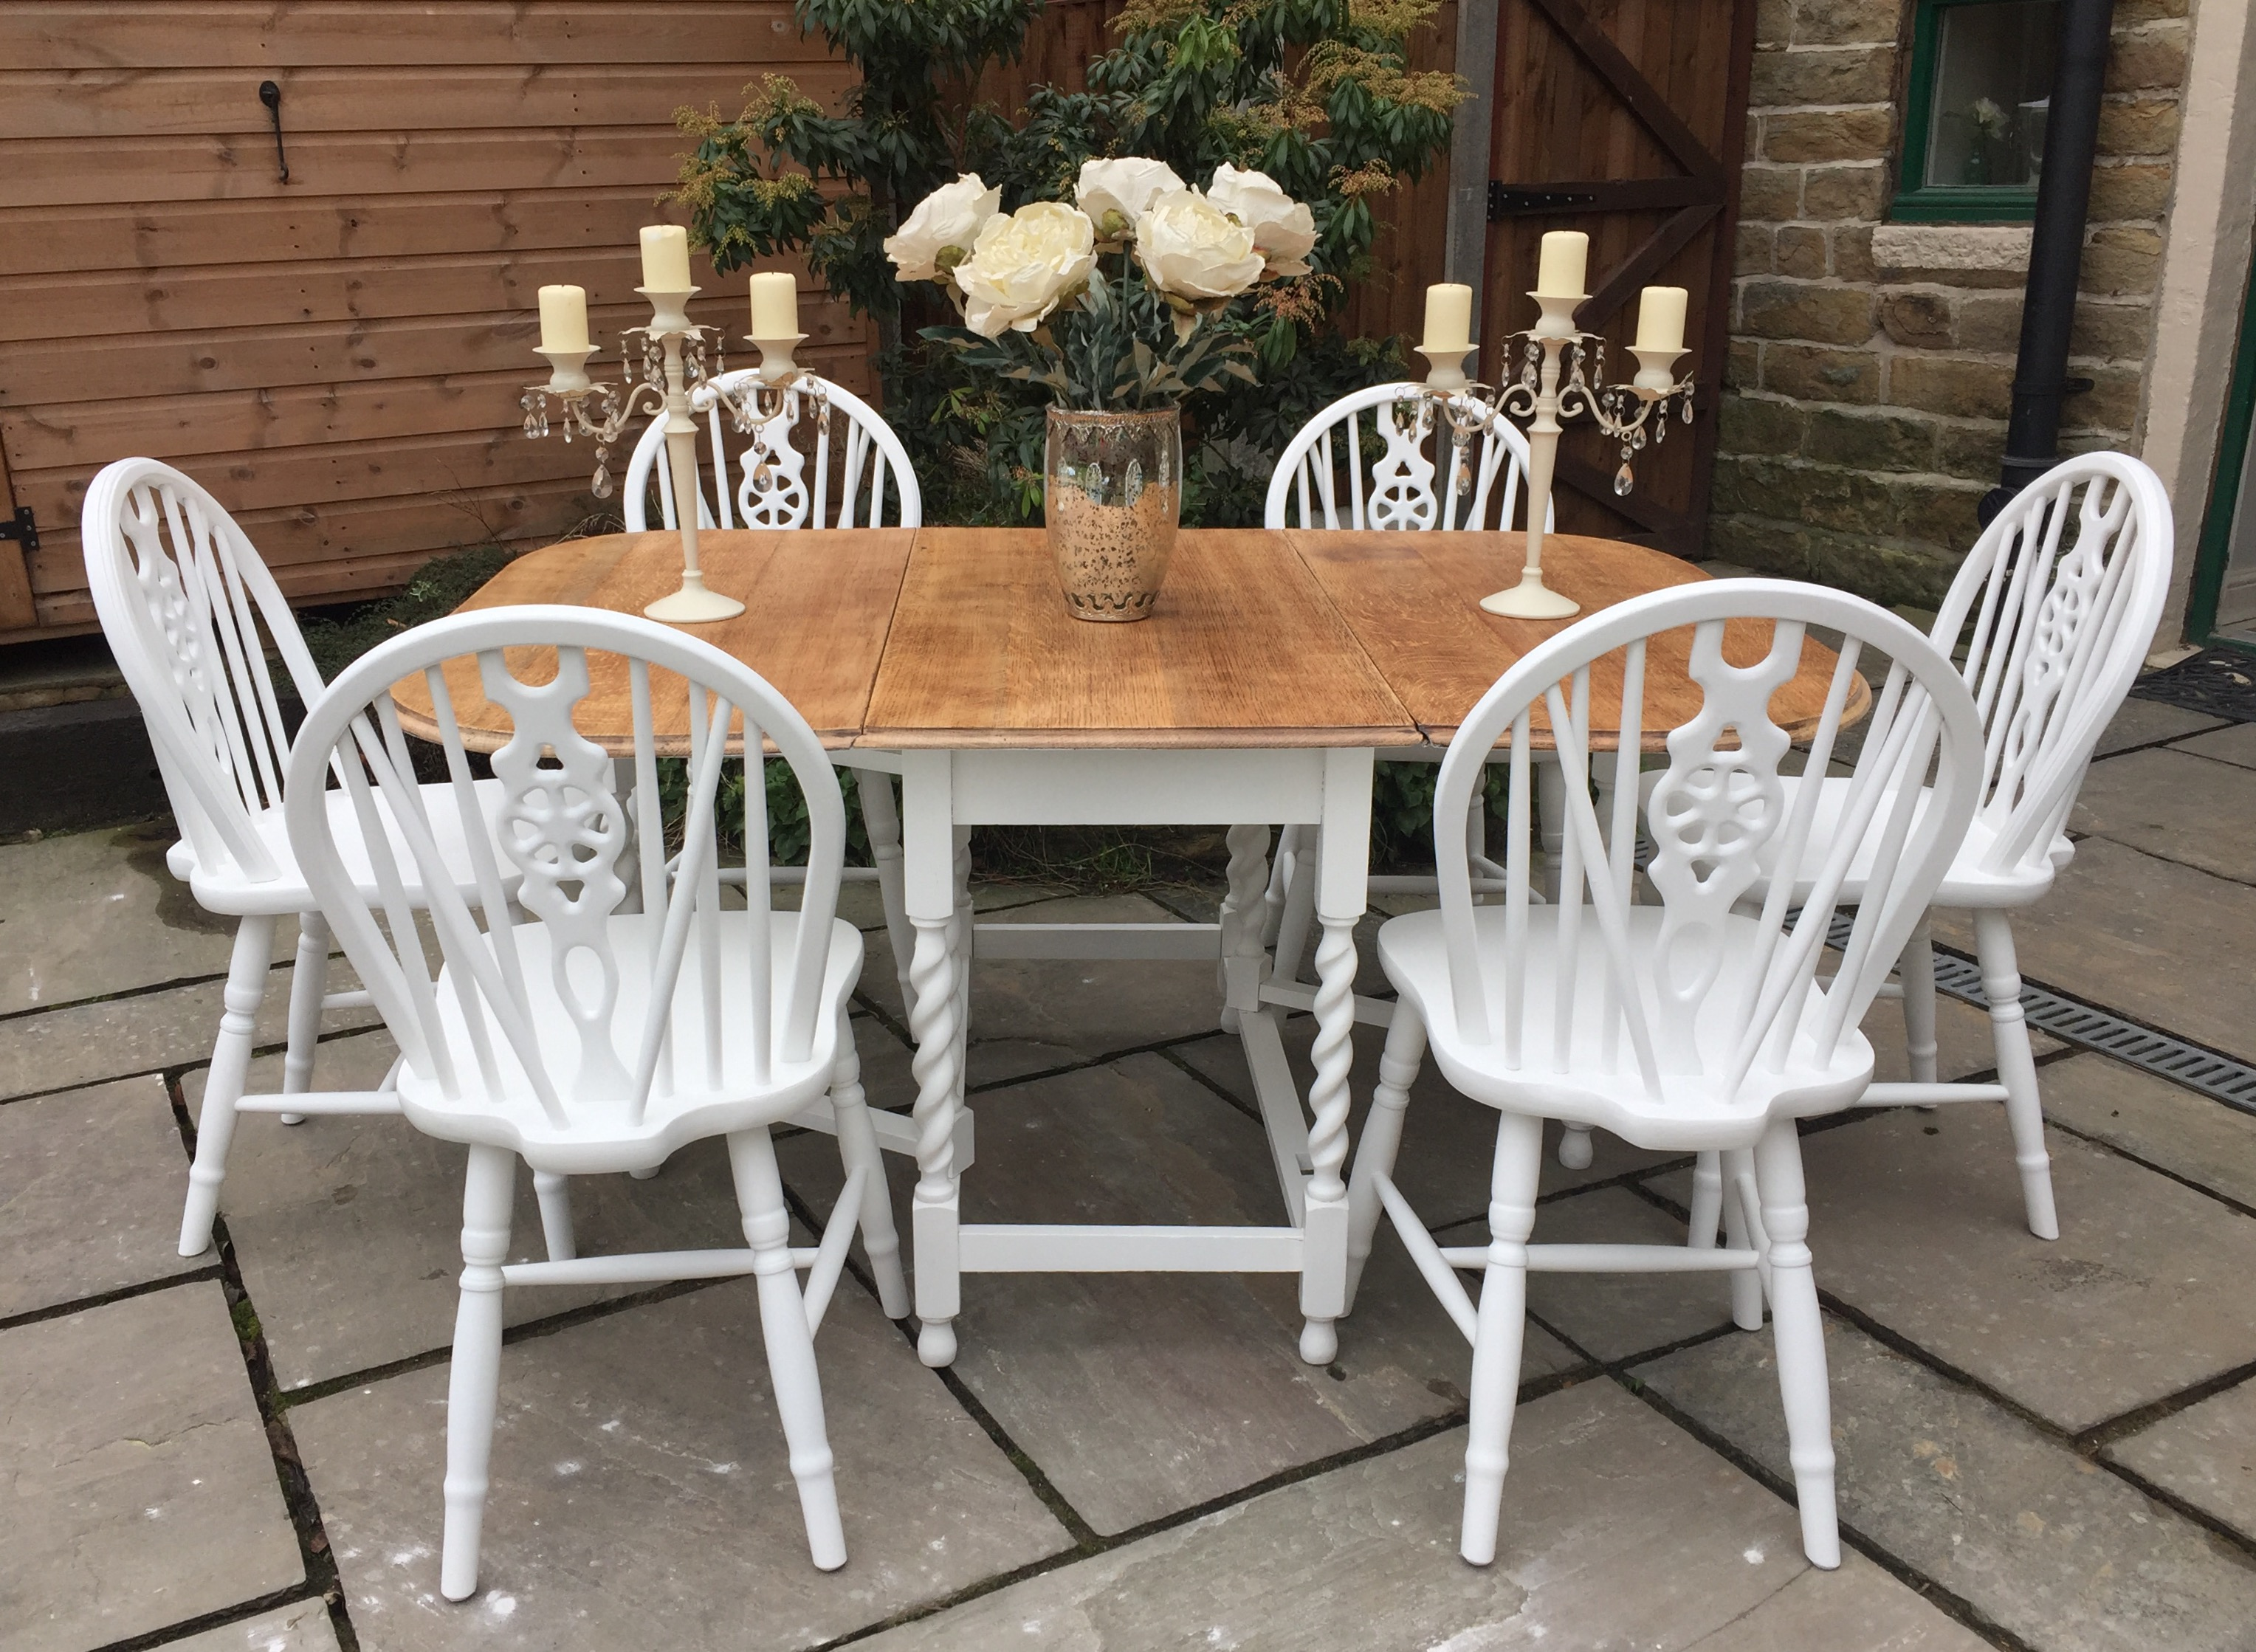 Vintage Drop Leaf Dining Table 6 Chairs Shabby Chick Vintage Superior Furniture Restoration And Refurbishment Rochdale Manchester Lancashire North West